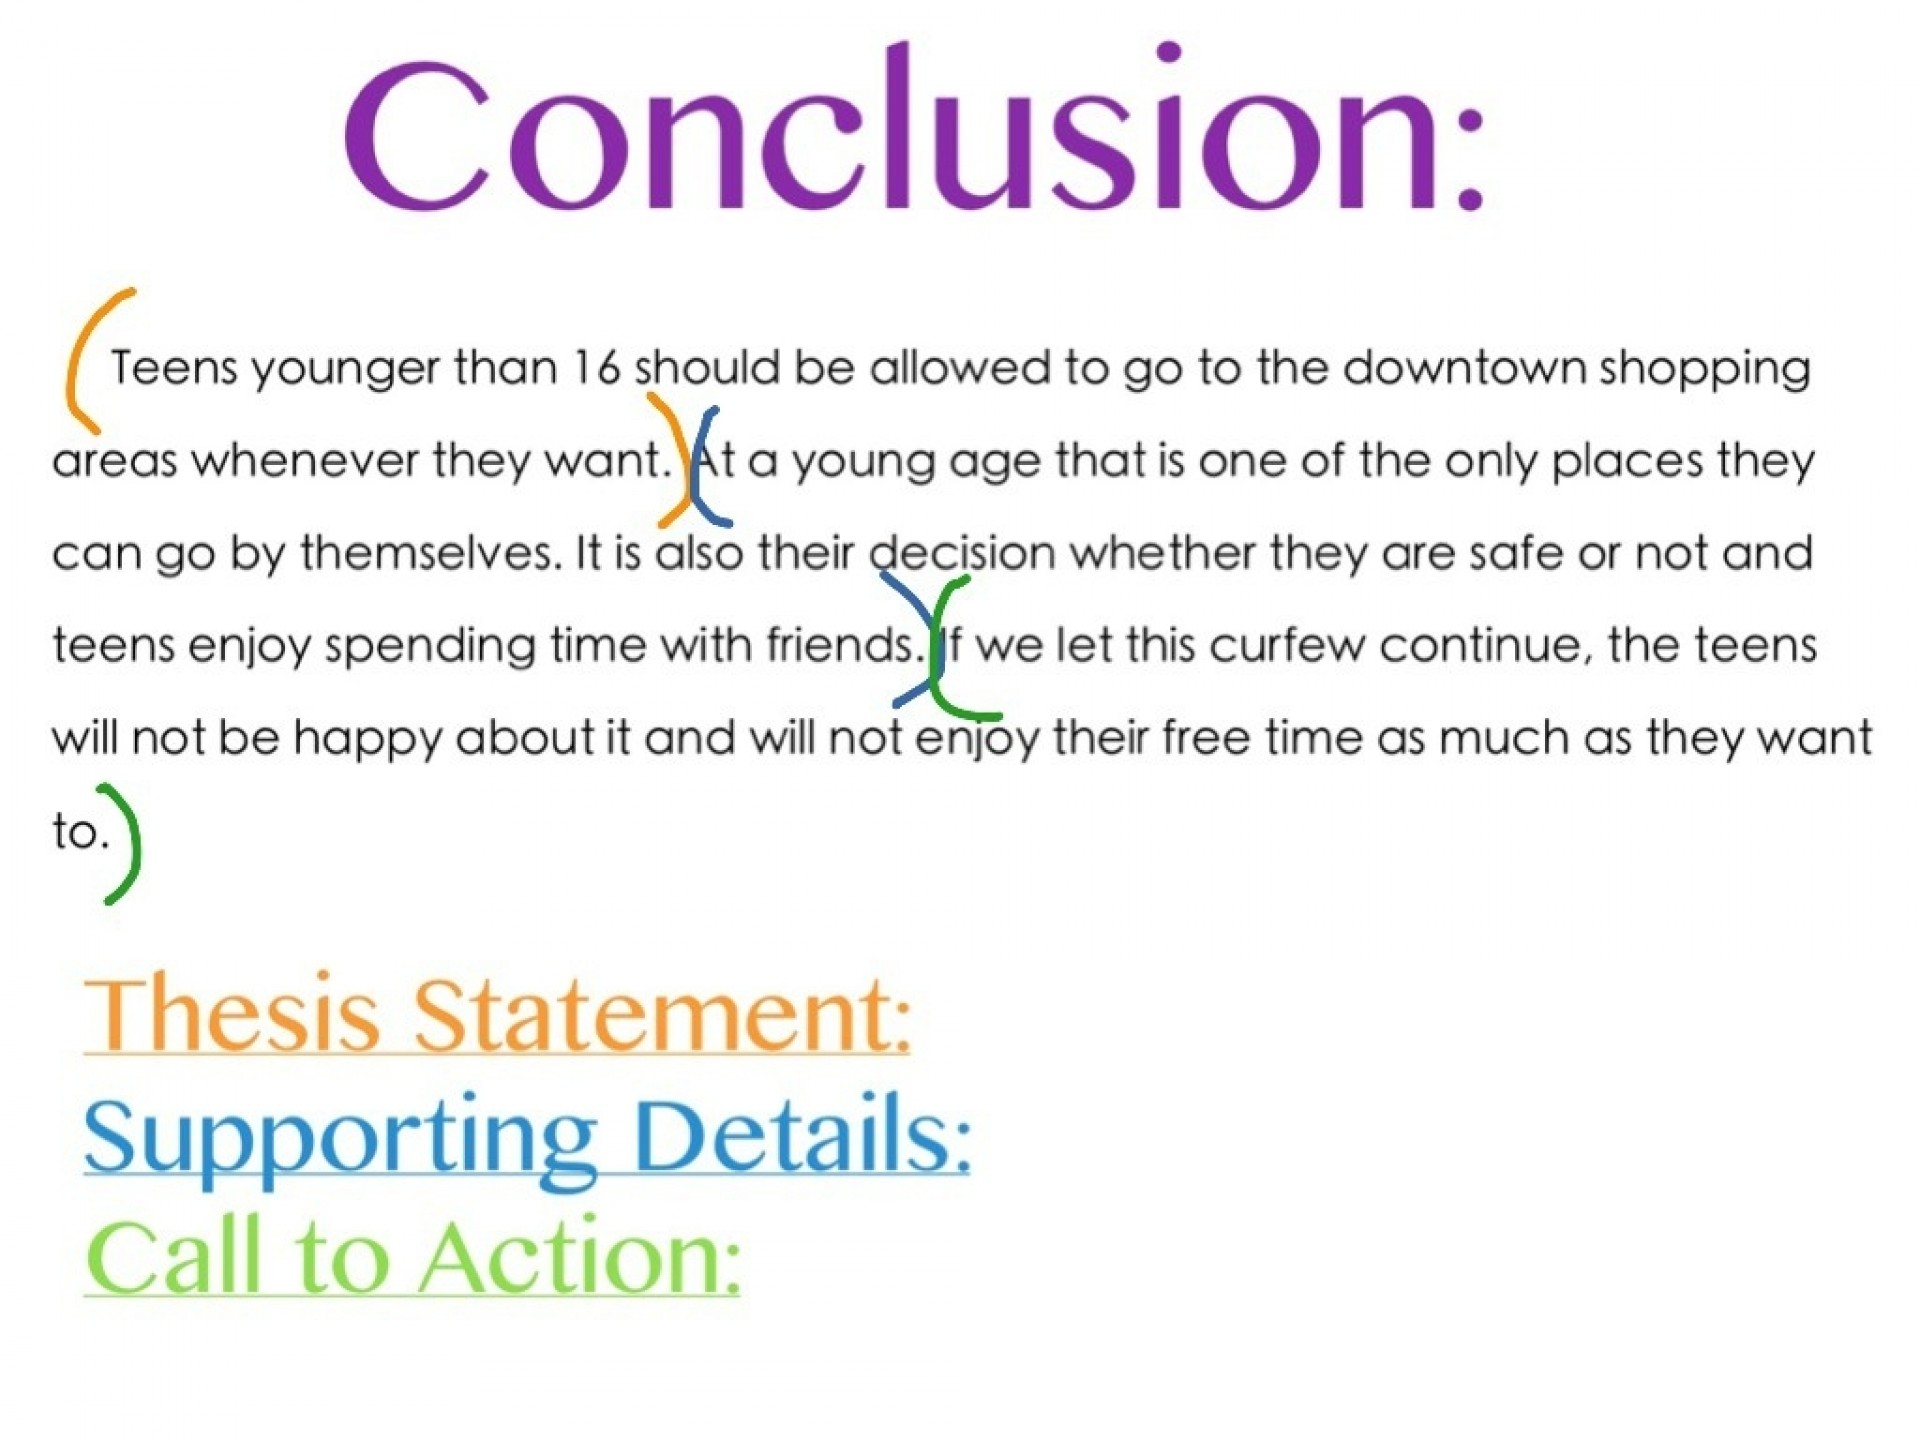 017 Research Paper Example Of Conclusion Write Good Strategies For Writing Astounding Conclusions In About Smoking 1920